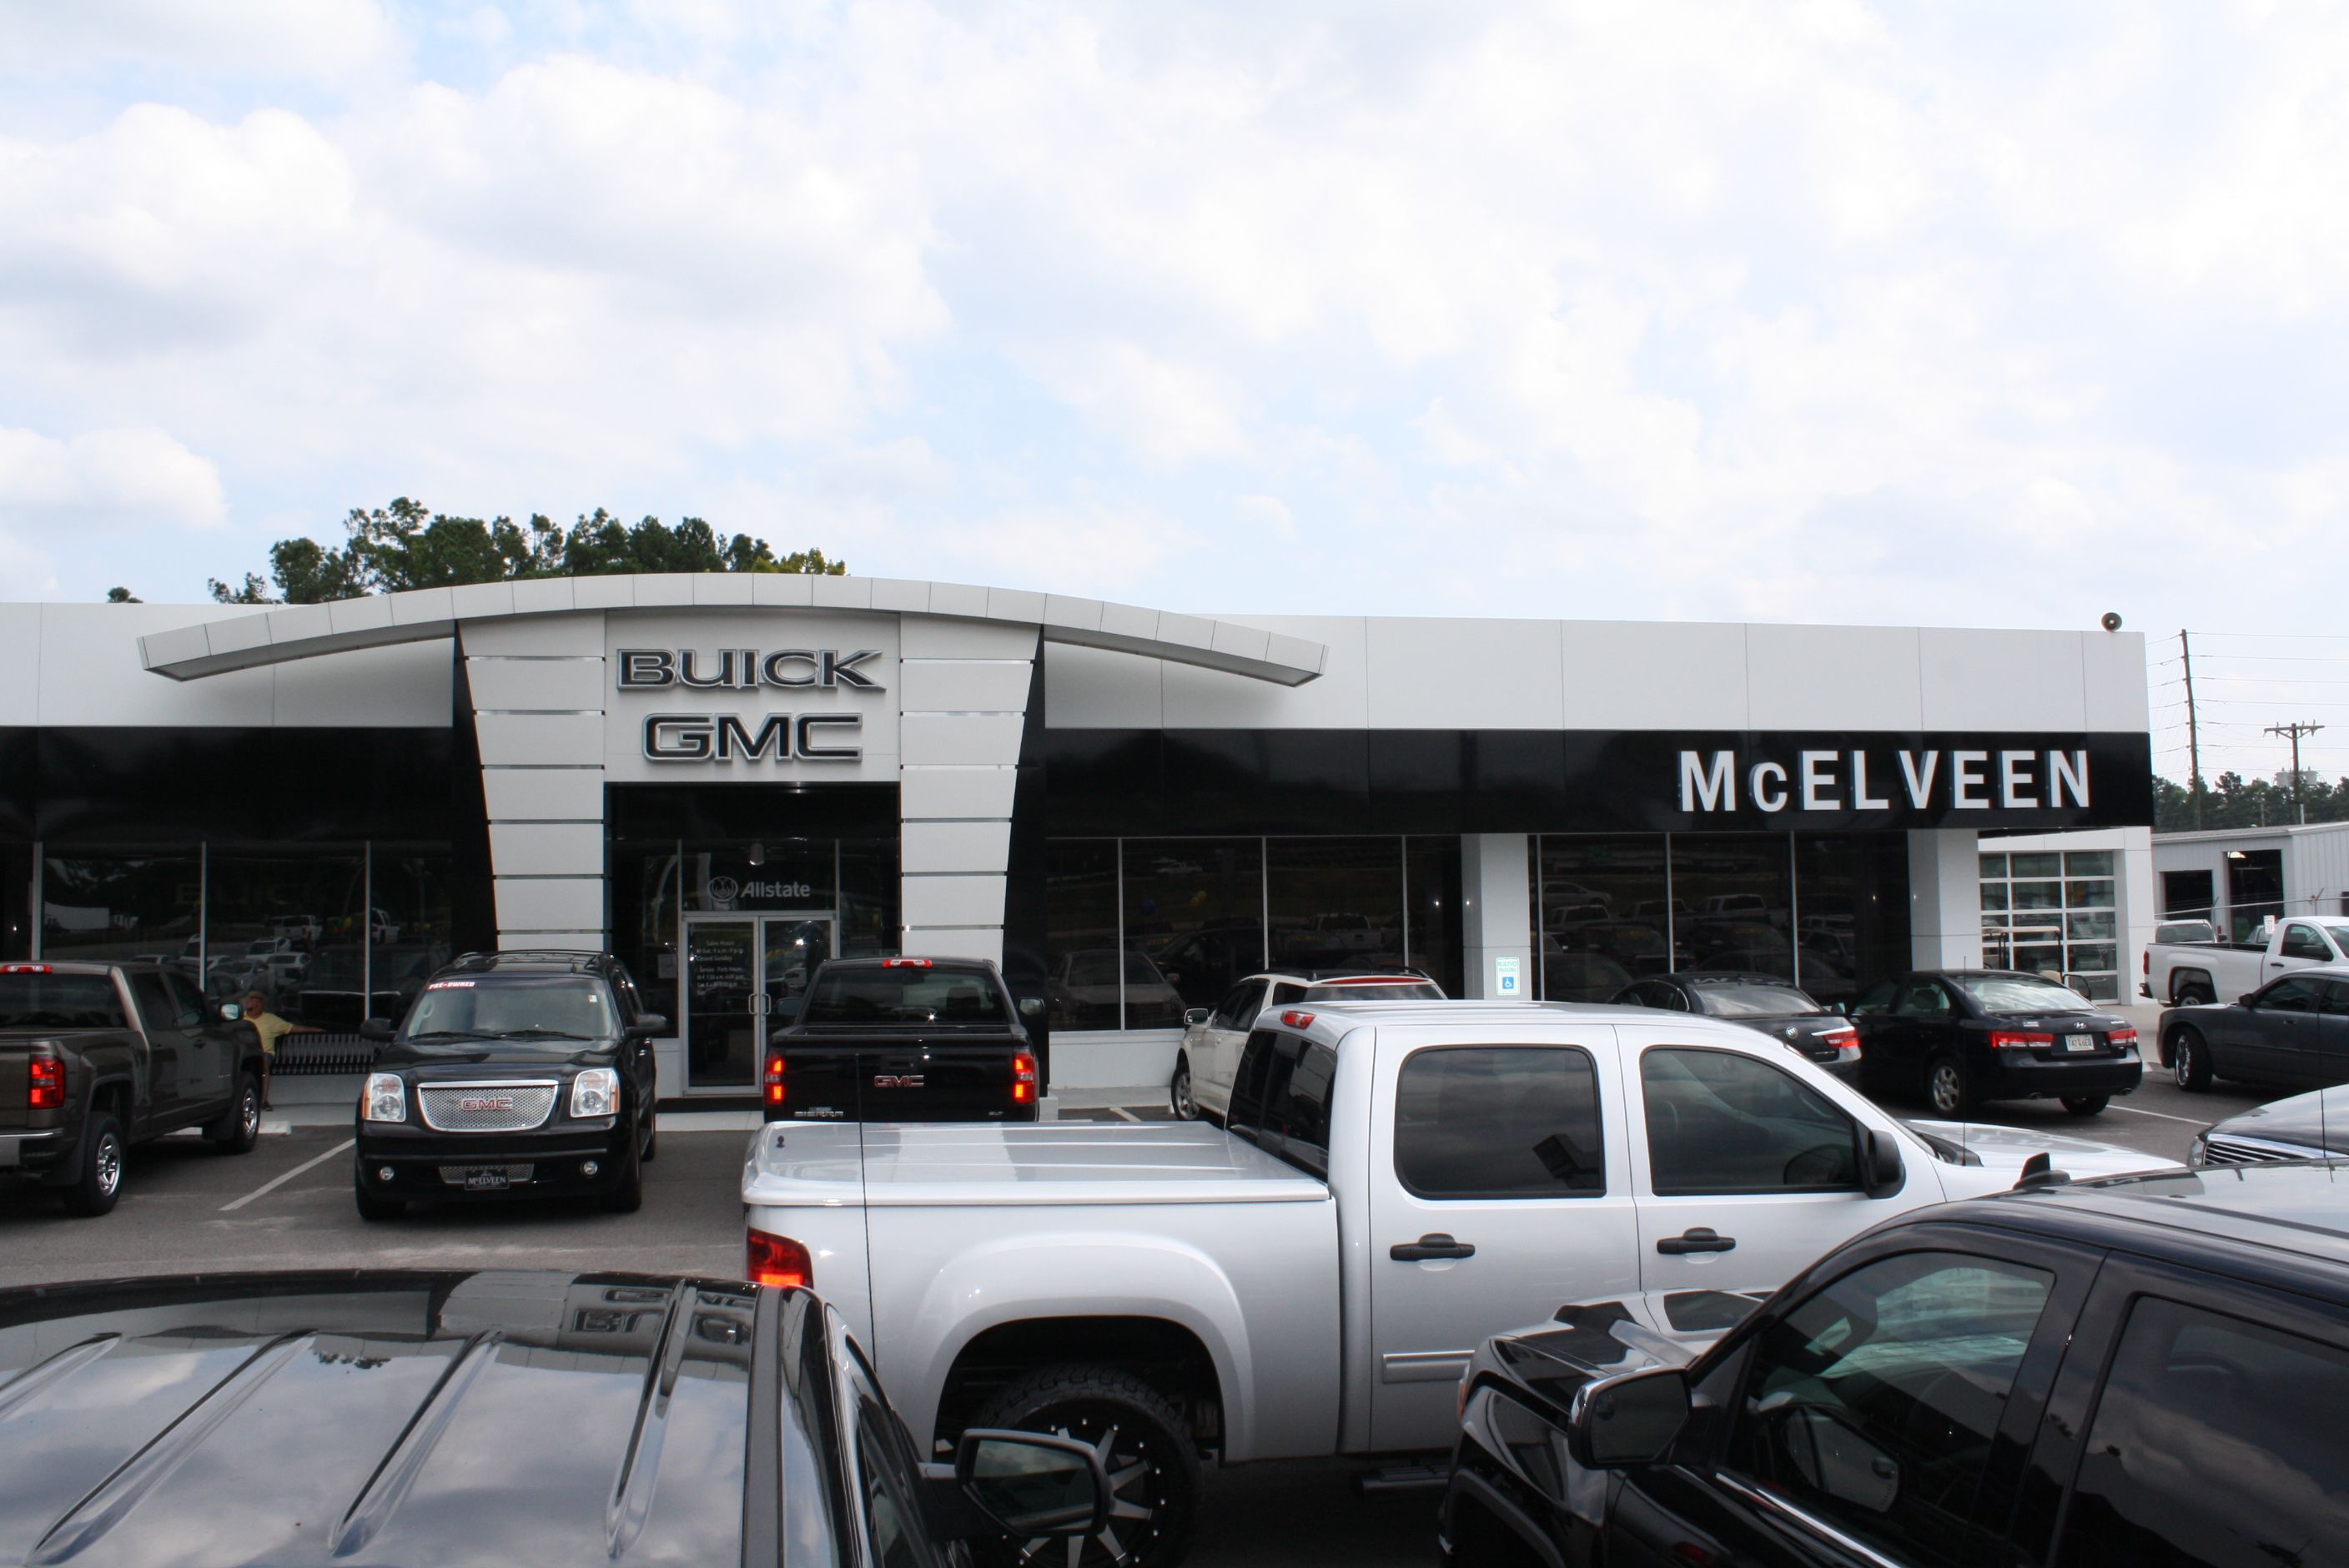 quality us news second among jdp sierra dealerships content all gmc en vehicles media slt ranks pages initial nameplates in detail jun